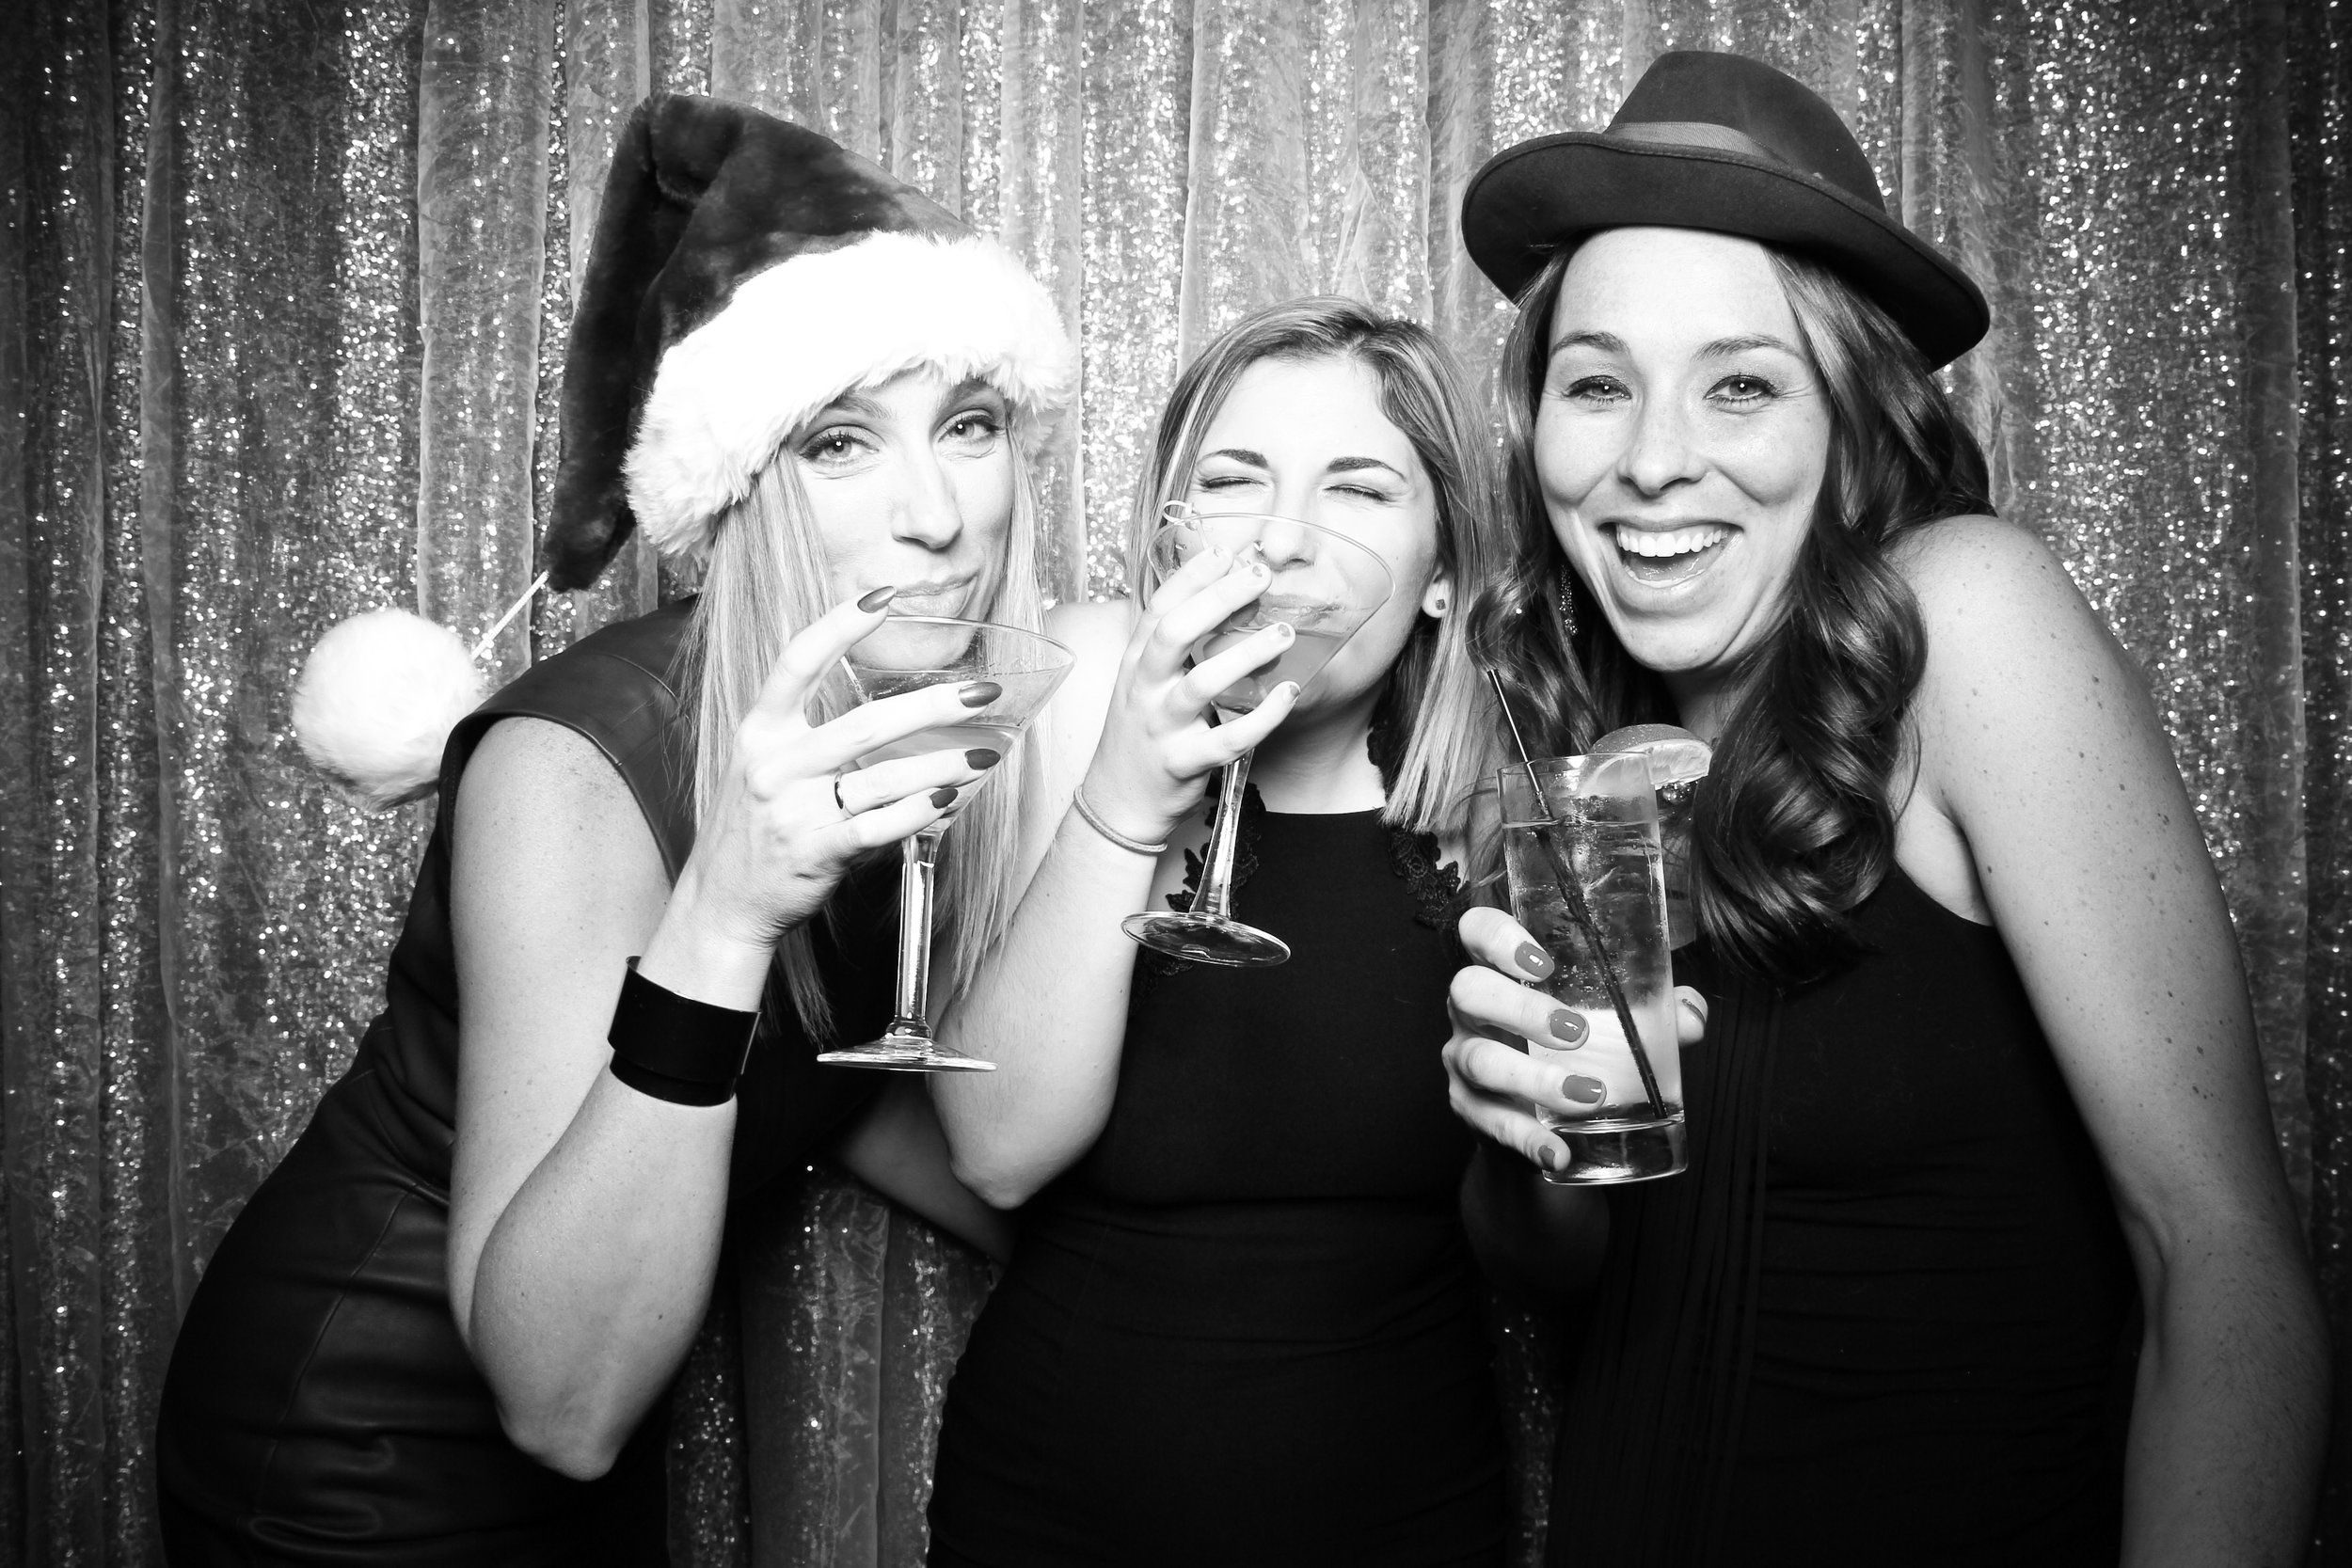 Chicago_Vintage_Photobooth_Montgomery_Club_Holiday_Party_13.jpg